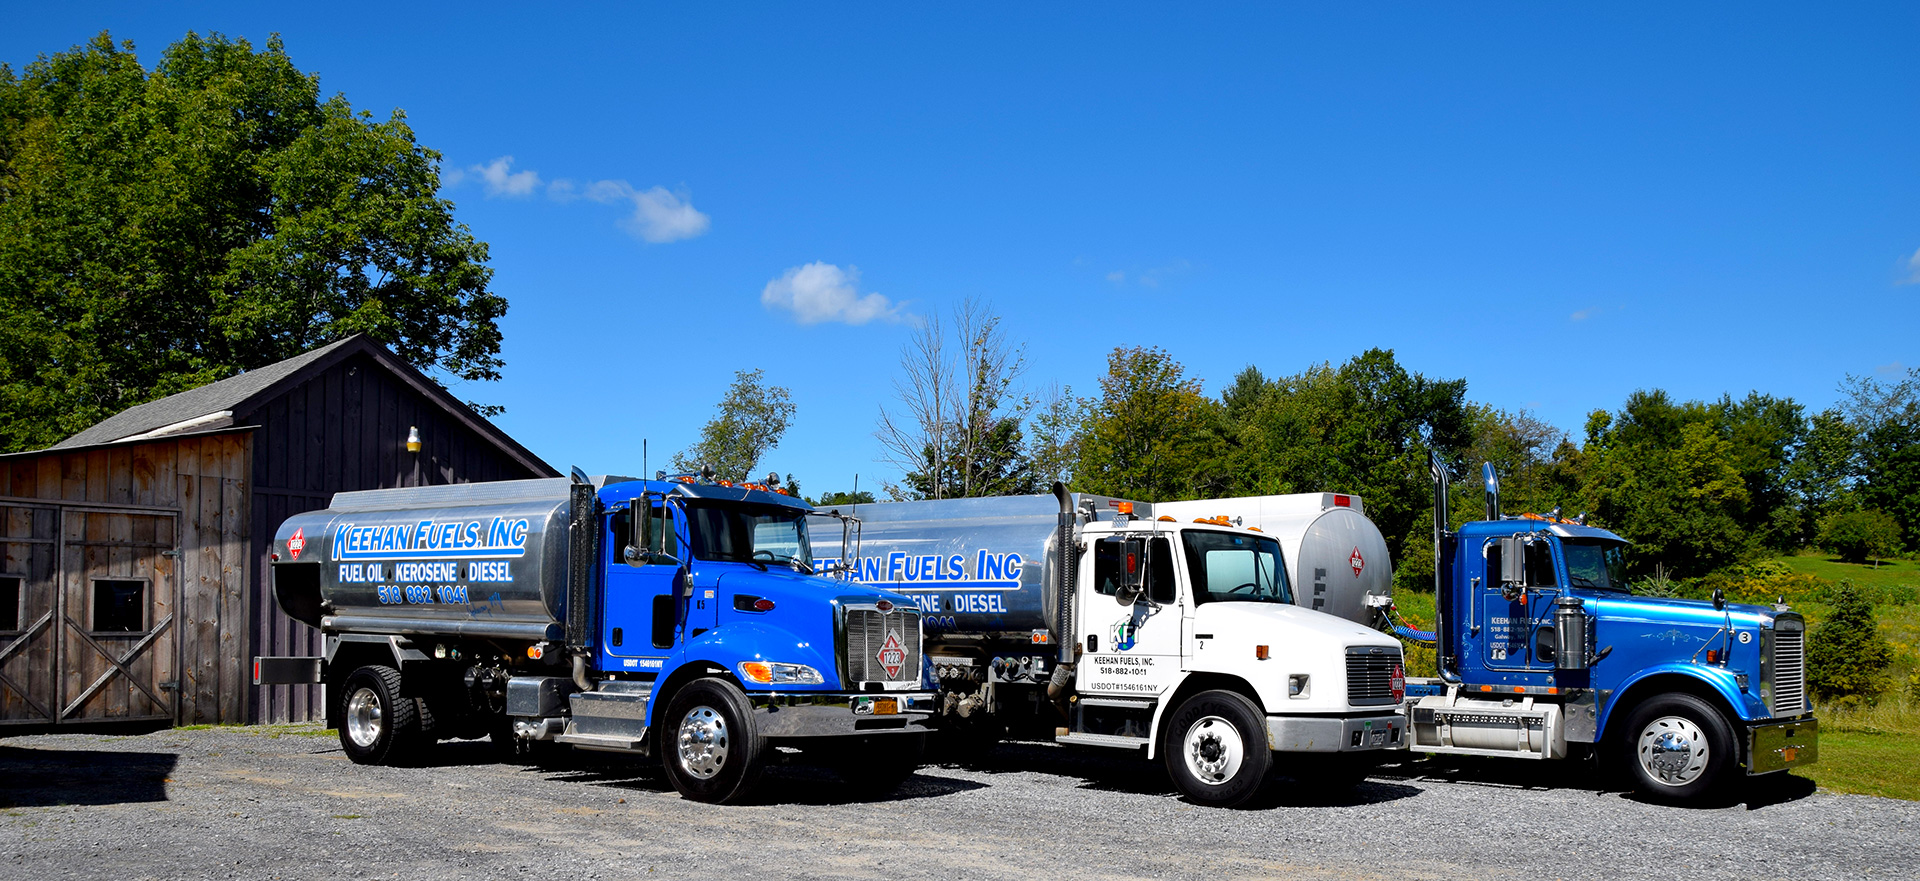 Keehan Fuels, Inc. :: Our Fleet of Home Energy Delivery Trucks in Galway, New York